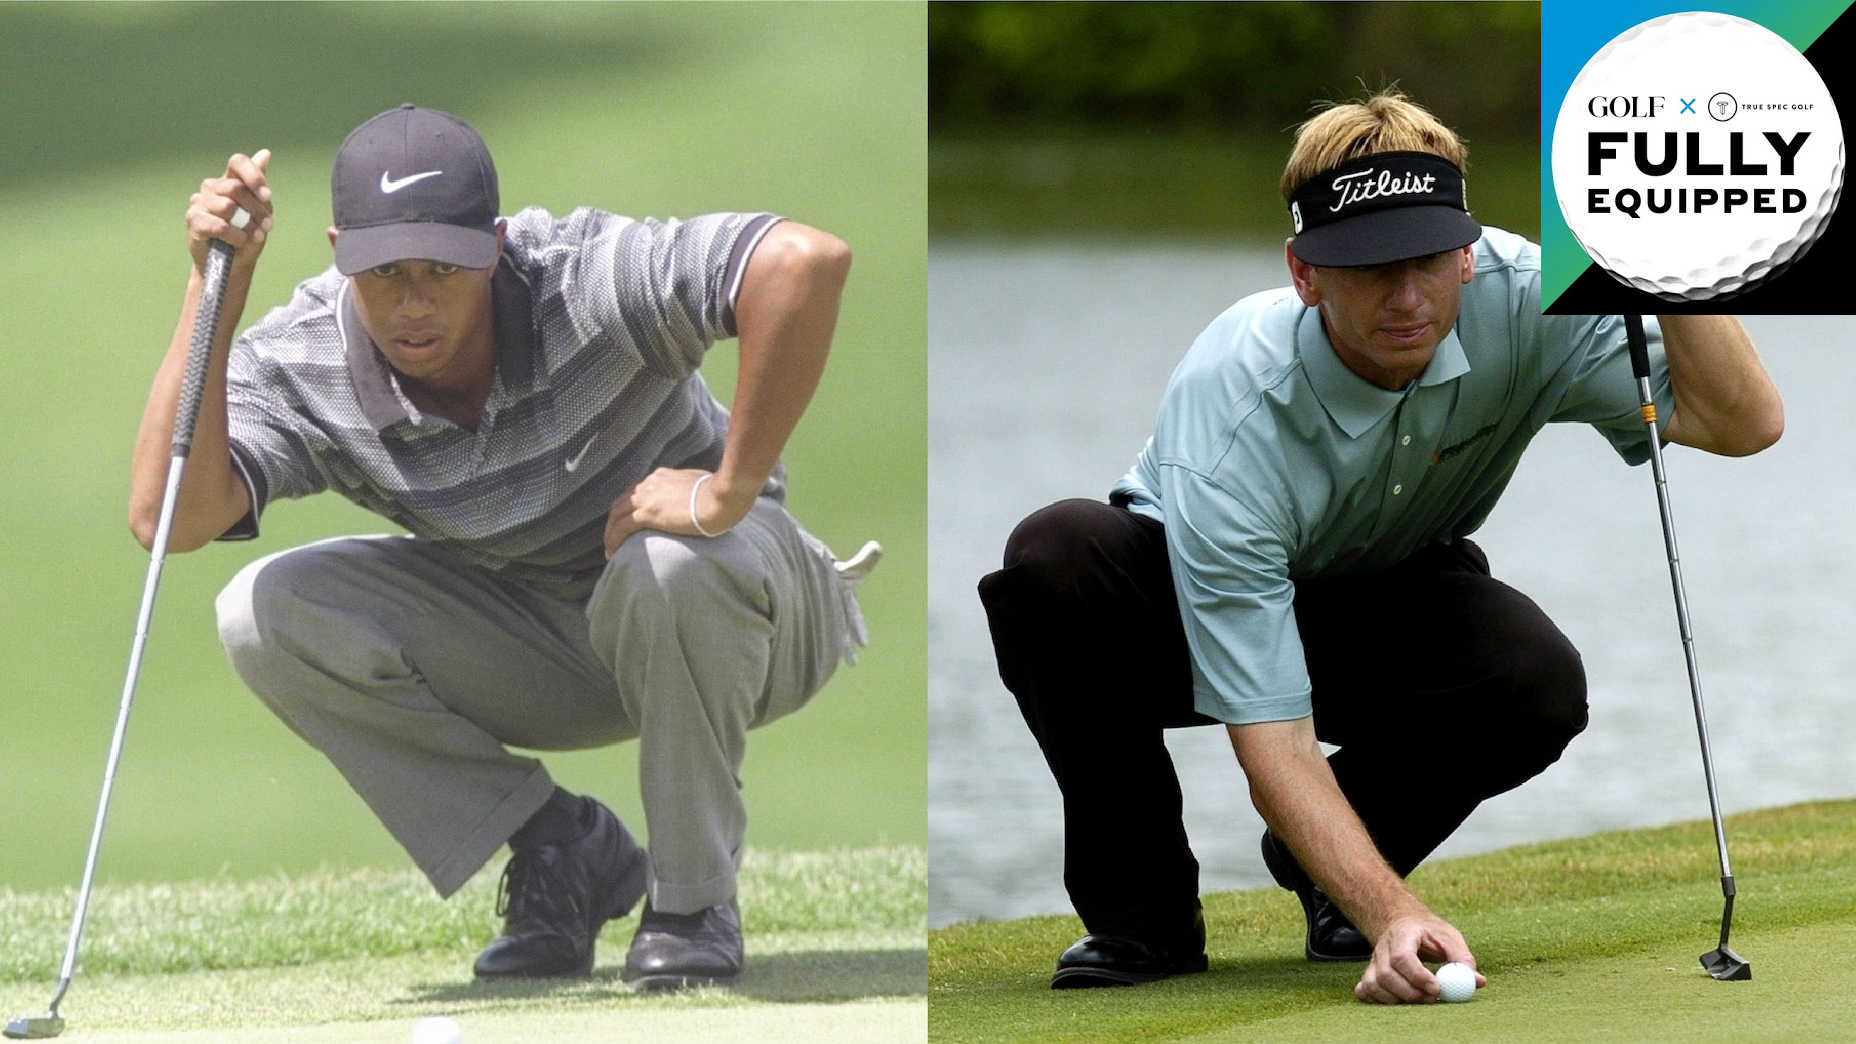 Scotty Cameron's fascinating story about Tiger Woods and Brad Faxon